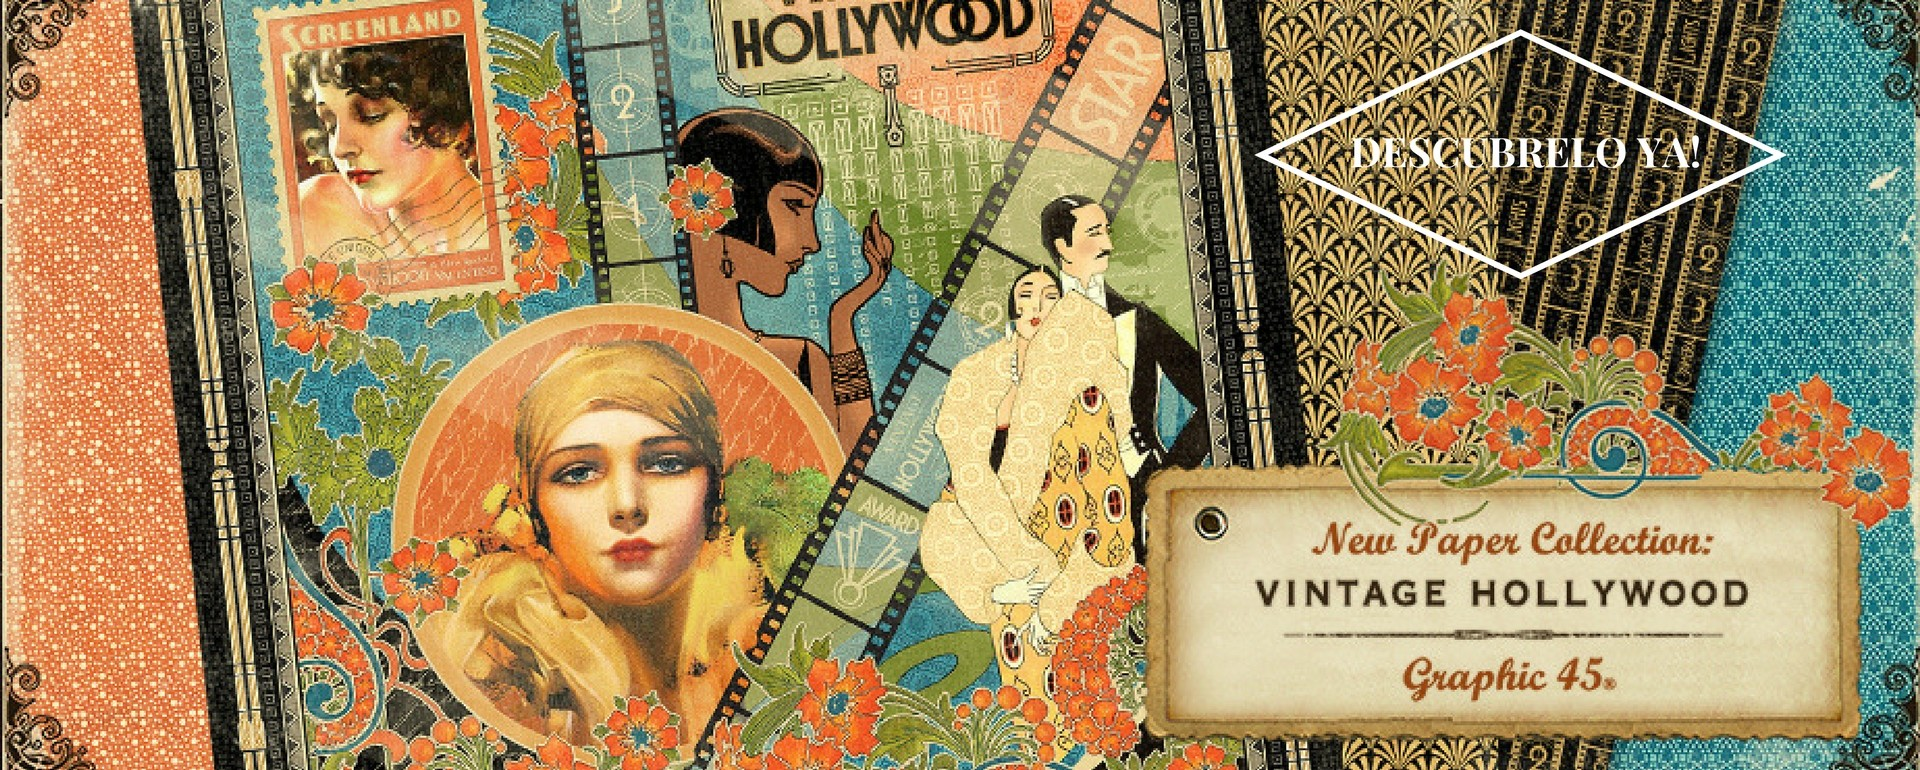 Vintage Hollywood Graphic 45